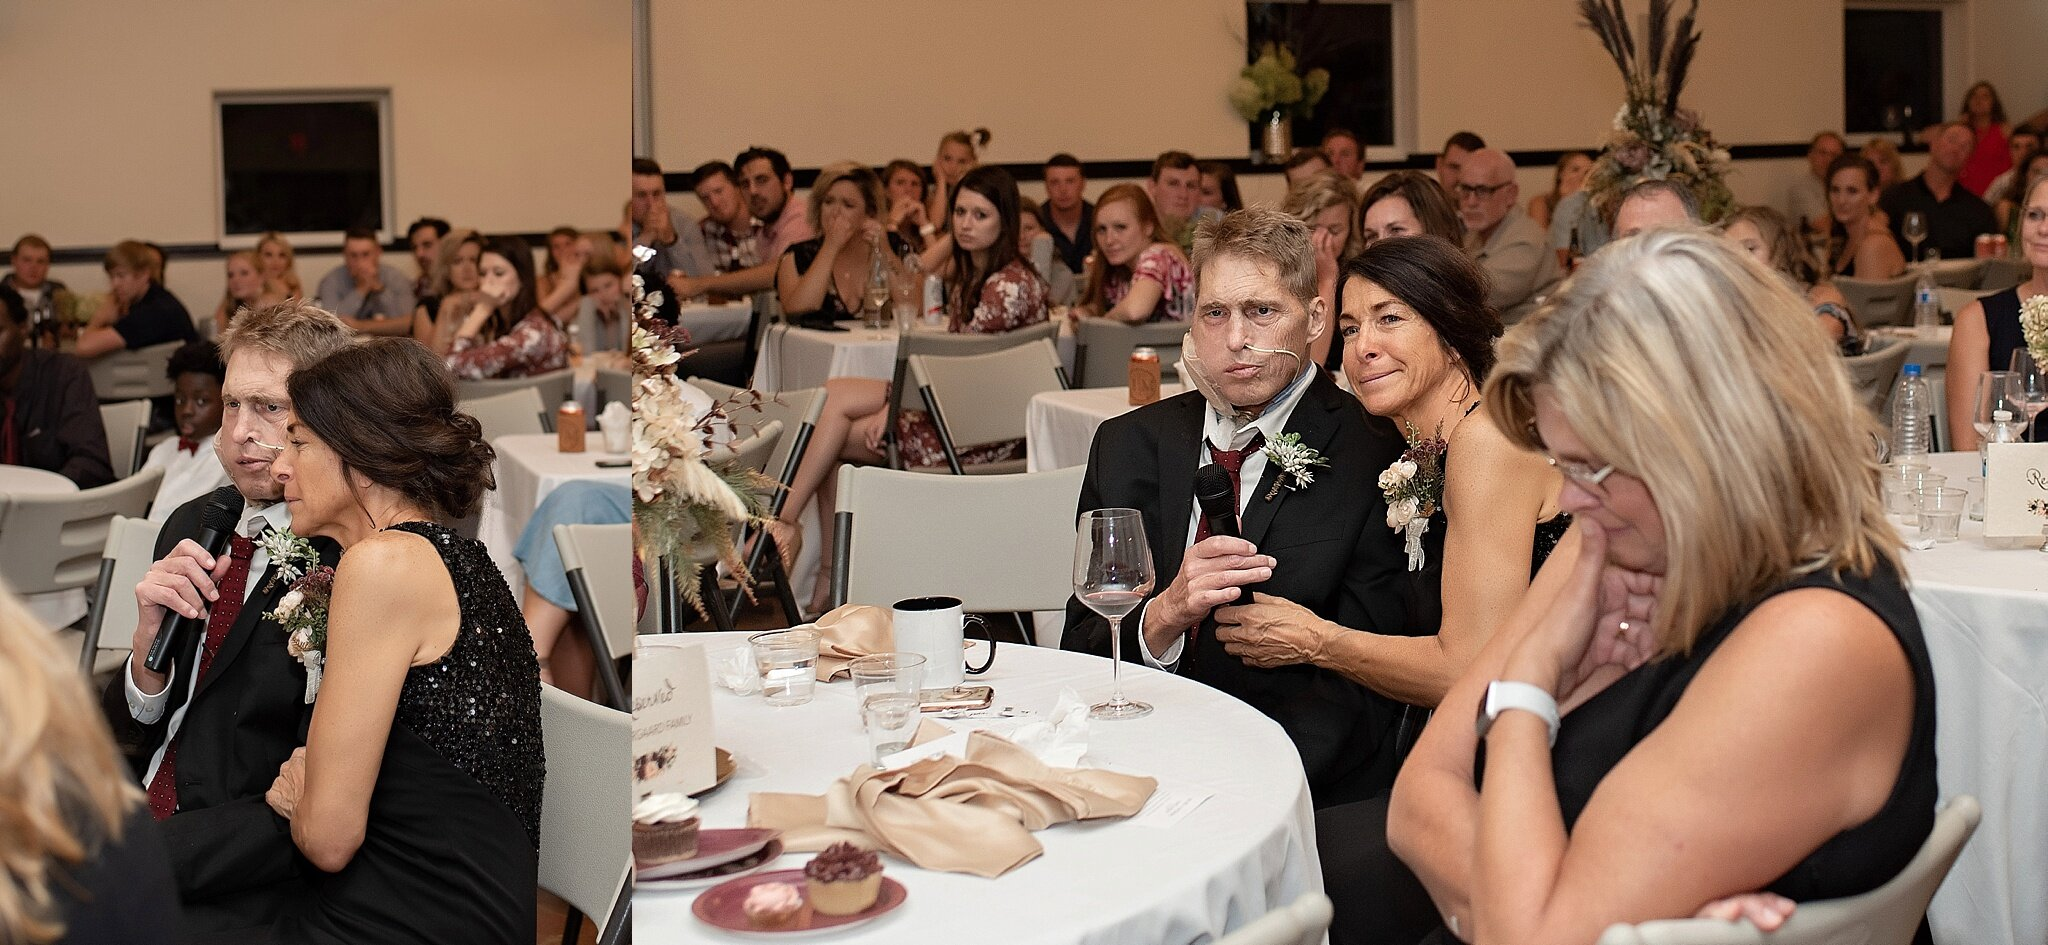 terminally ill father gives a speech at his daughter's wedding